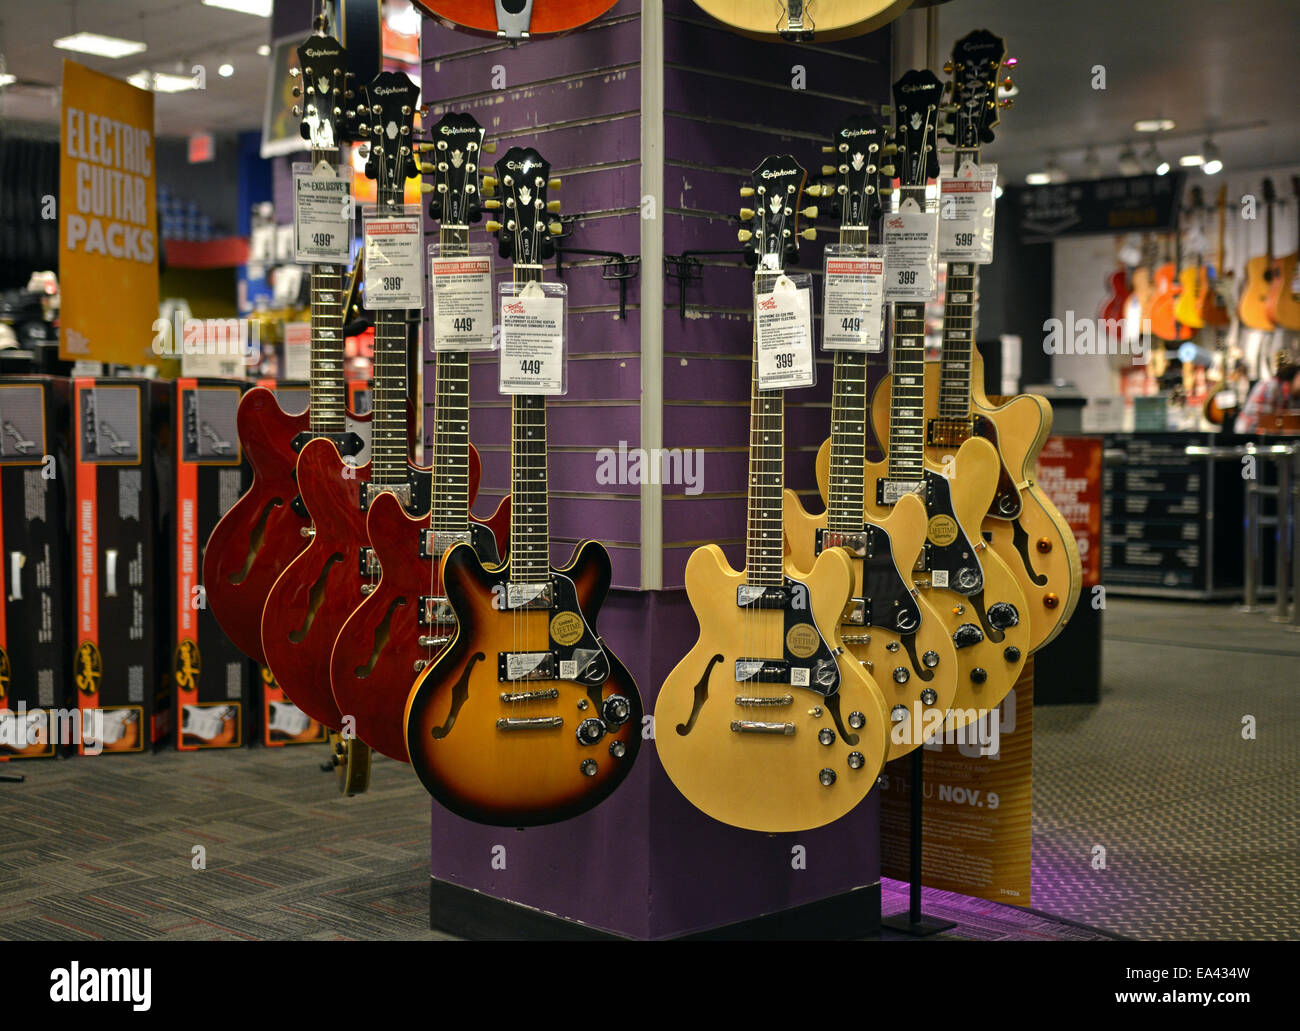 Guitar Center Arlington provides comprehensive guitar repair services for the Arlington area. Our repair technicians are as passionate about your guitars and basses as you are, and we have the experience needed to keep them performing at their best.